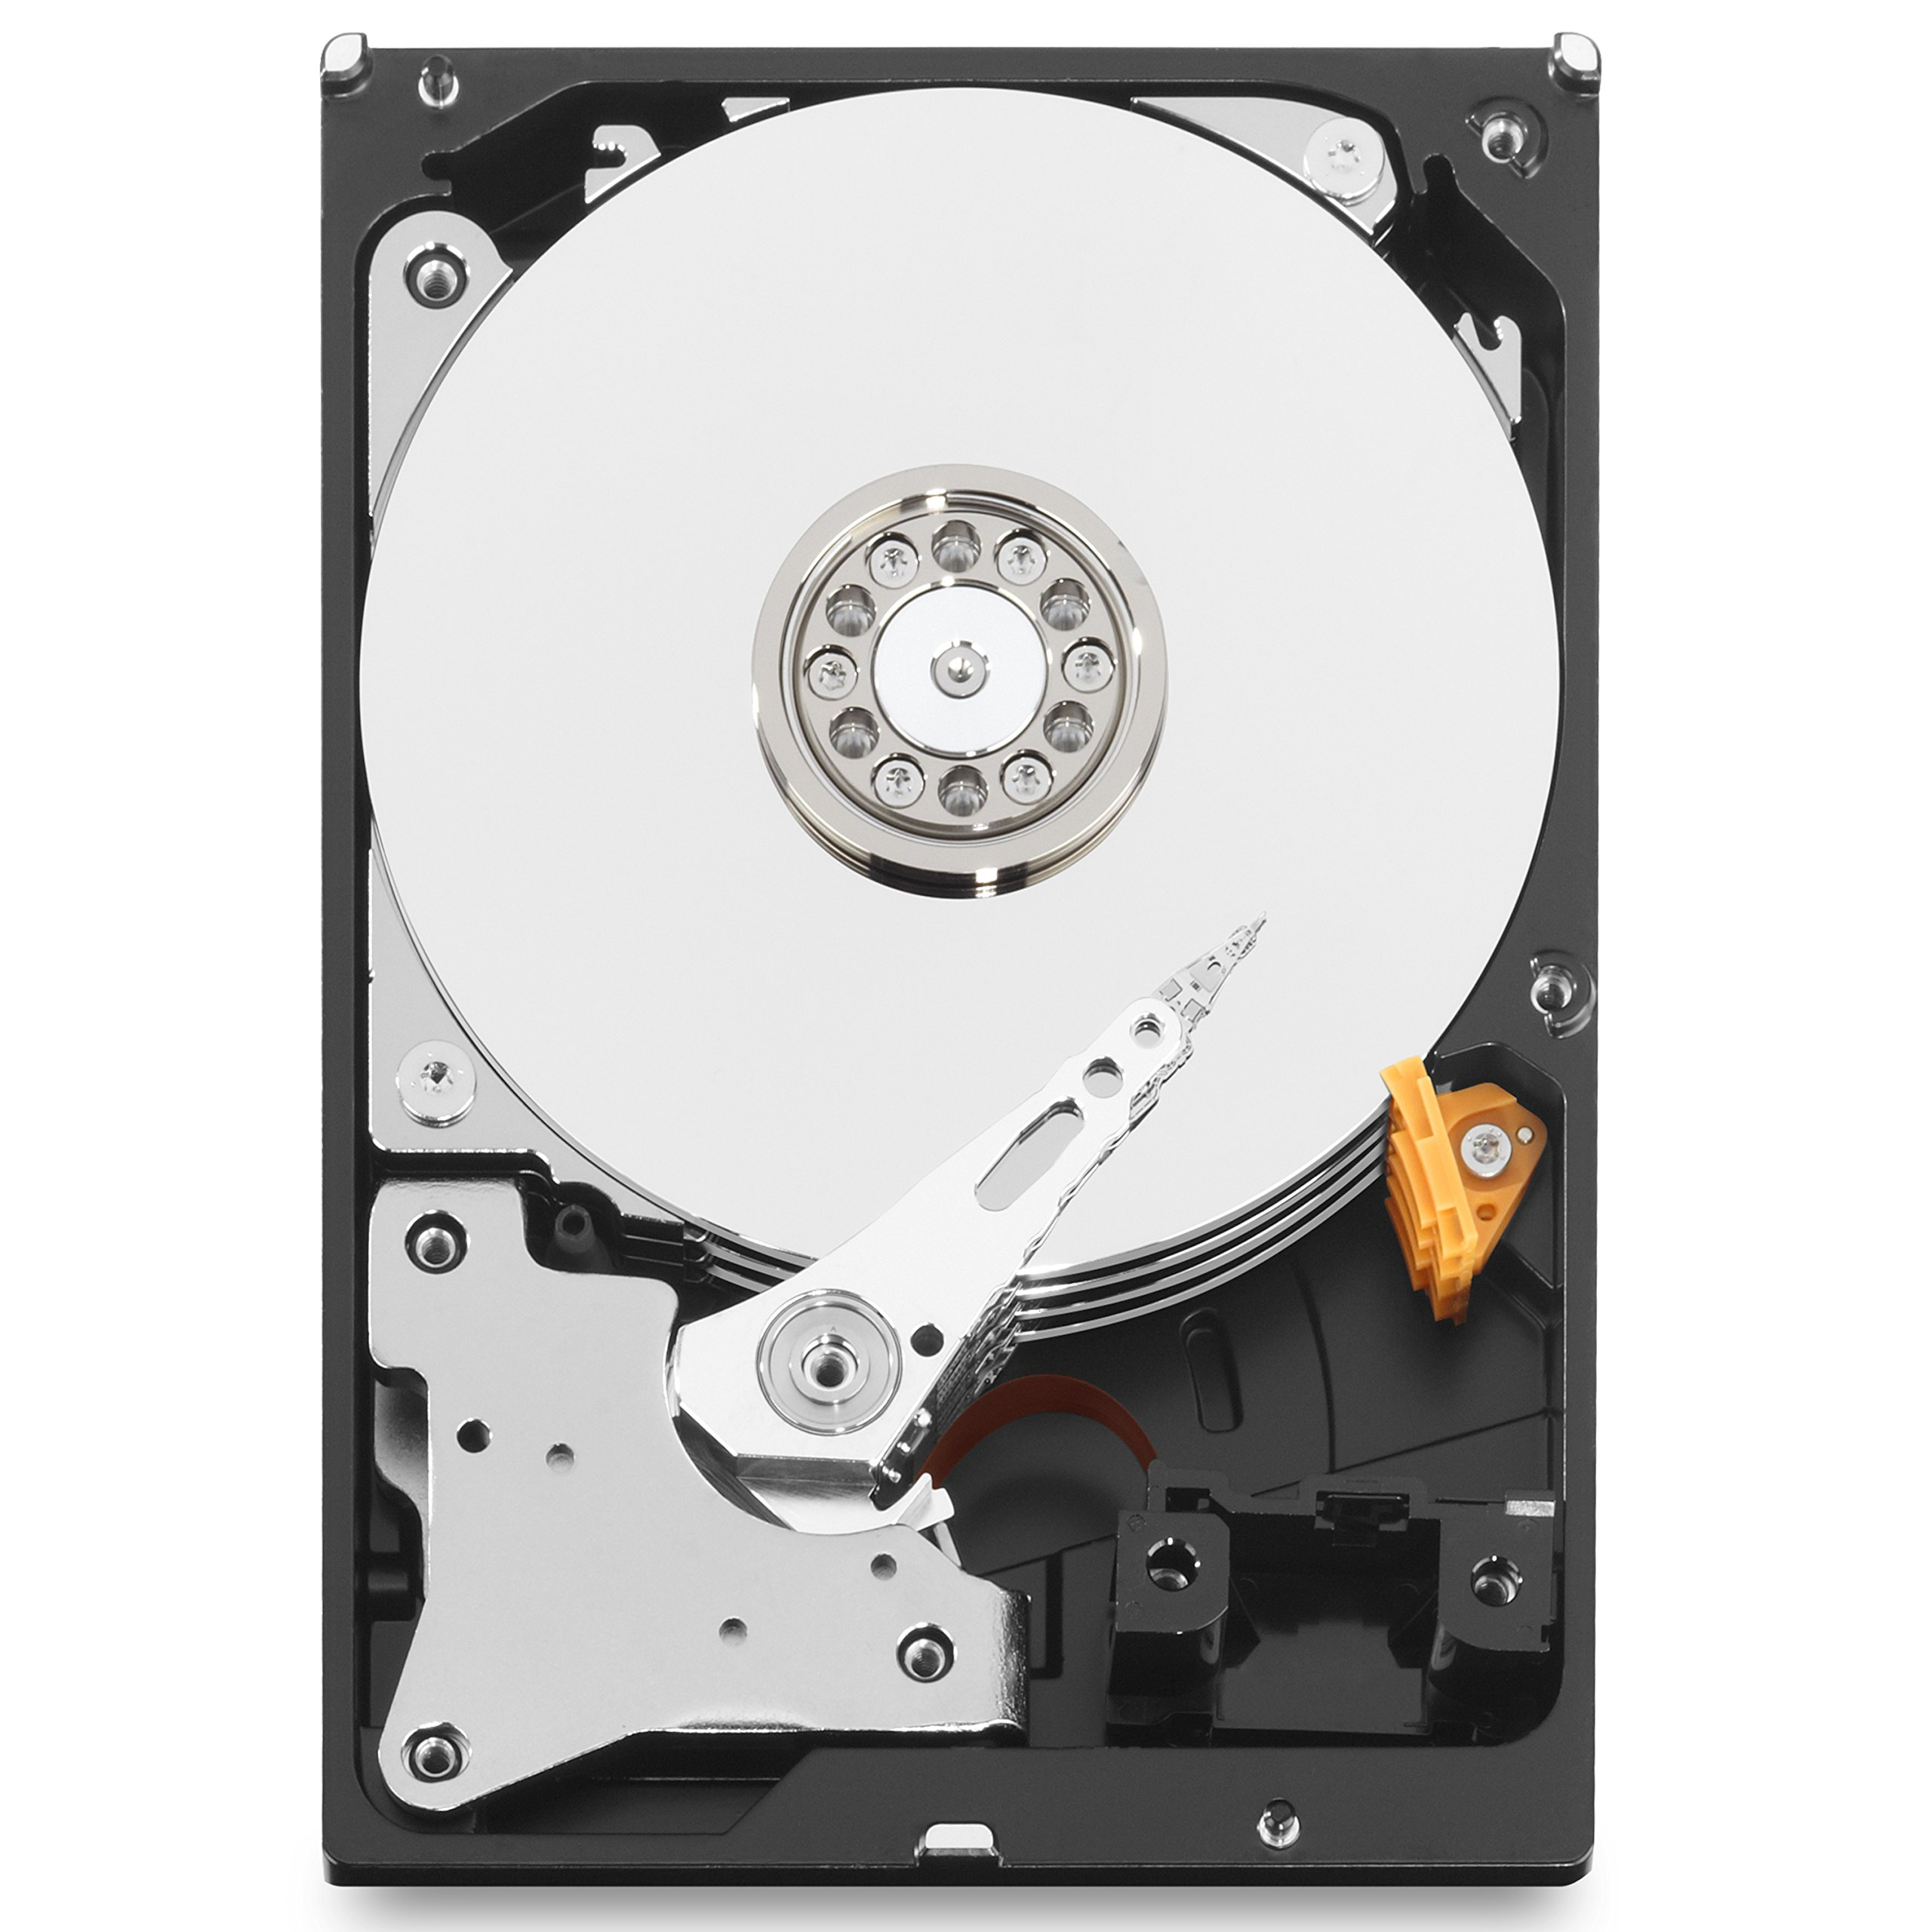 WD Red 8TB NAS Internal Hard Drive - 5400 RPM Class, SATA 6 Gb/s, 256 MB Cache, 3.5'' - WD80EFAX by Western Digital (Image #6)